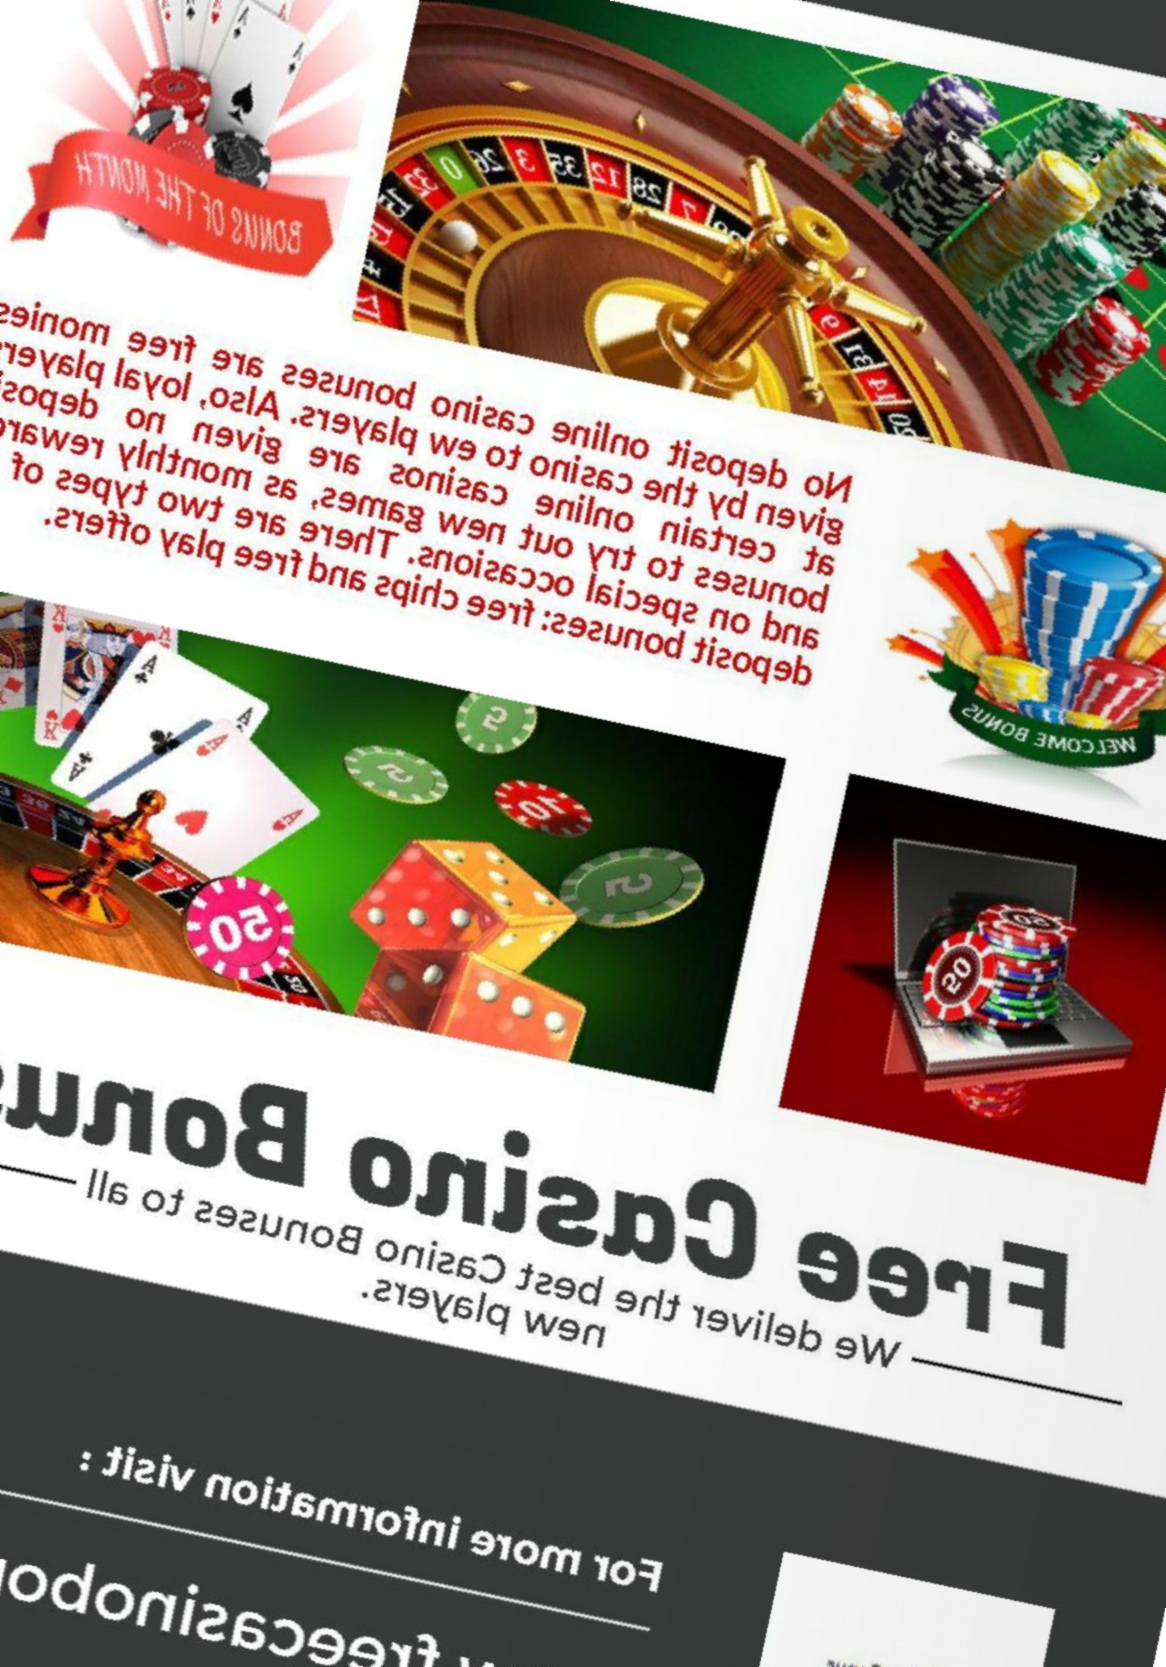 Best Casino Bonuses No Deposit